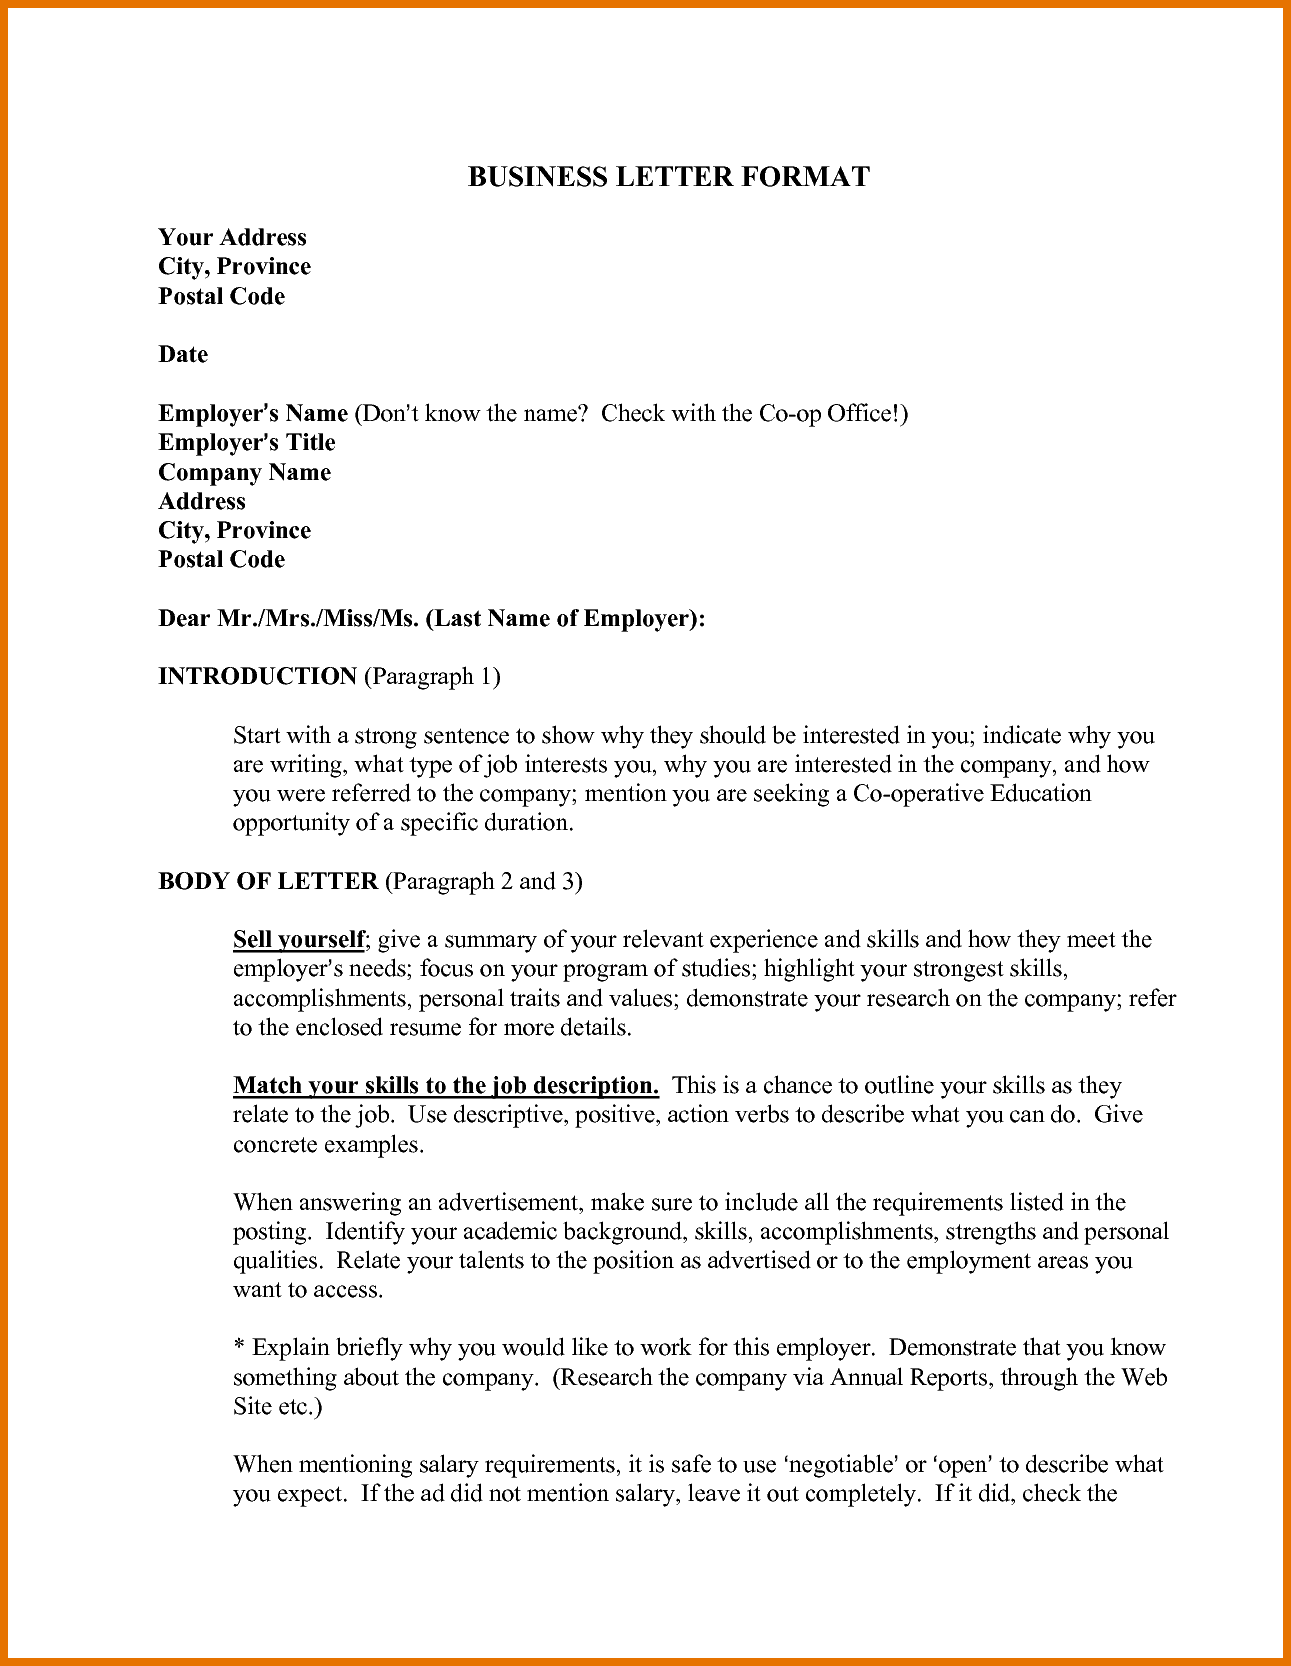 Example Business Letter Pdf Attendance Sheet Download Samples Word